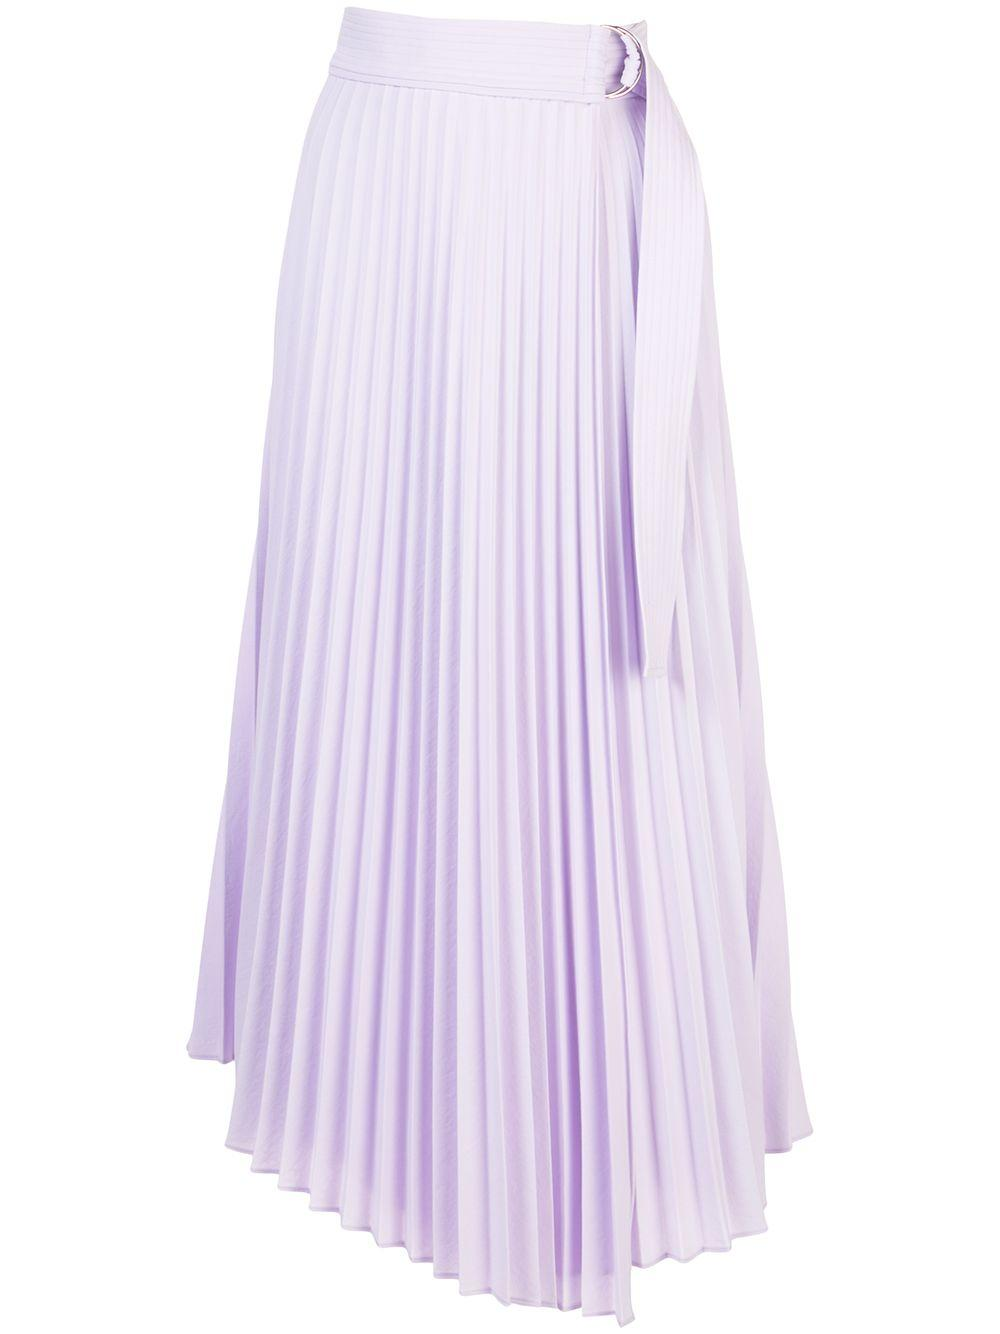 Arielle Pleated Midi Skirt Item # 3SKRT00221